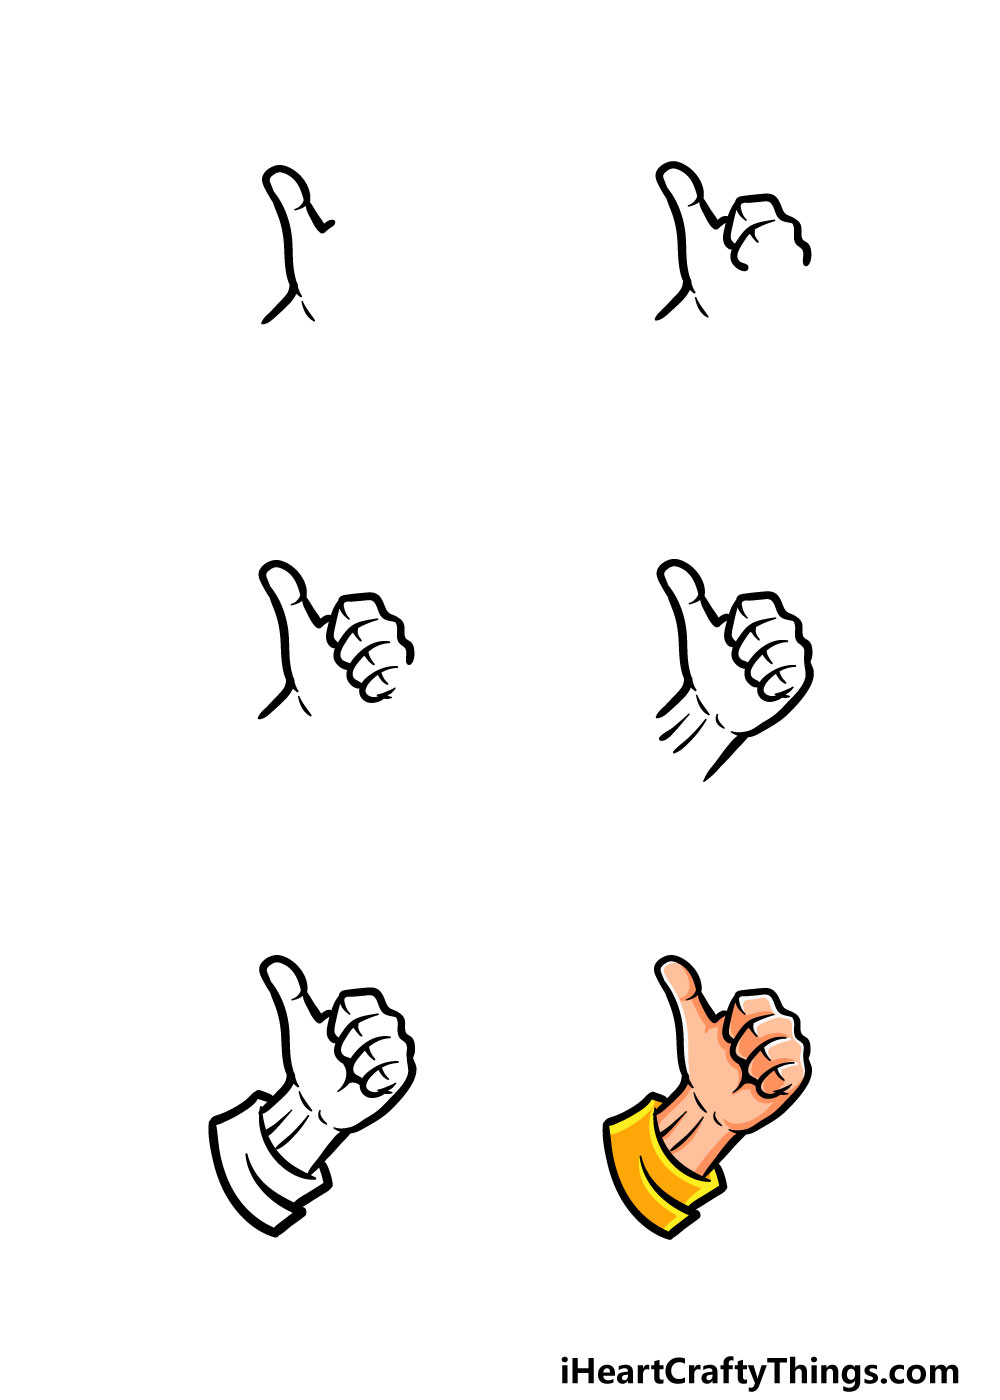 how to draw thumbs up in 6 steps